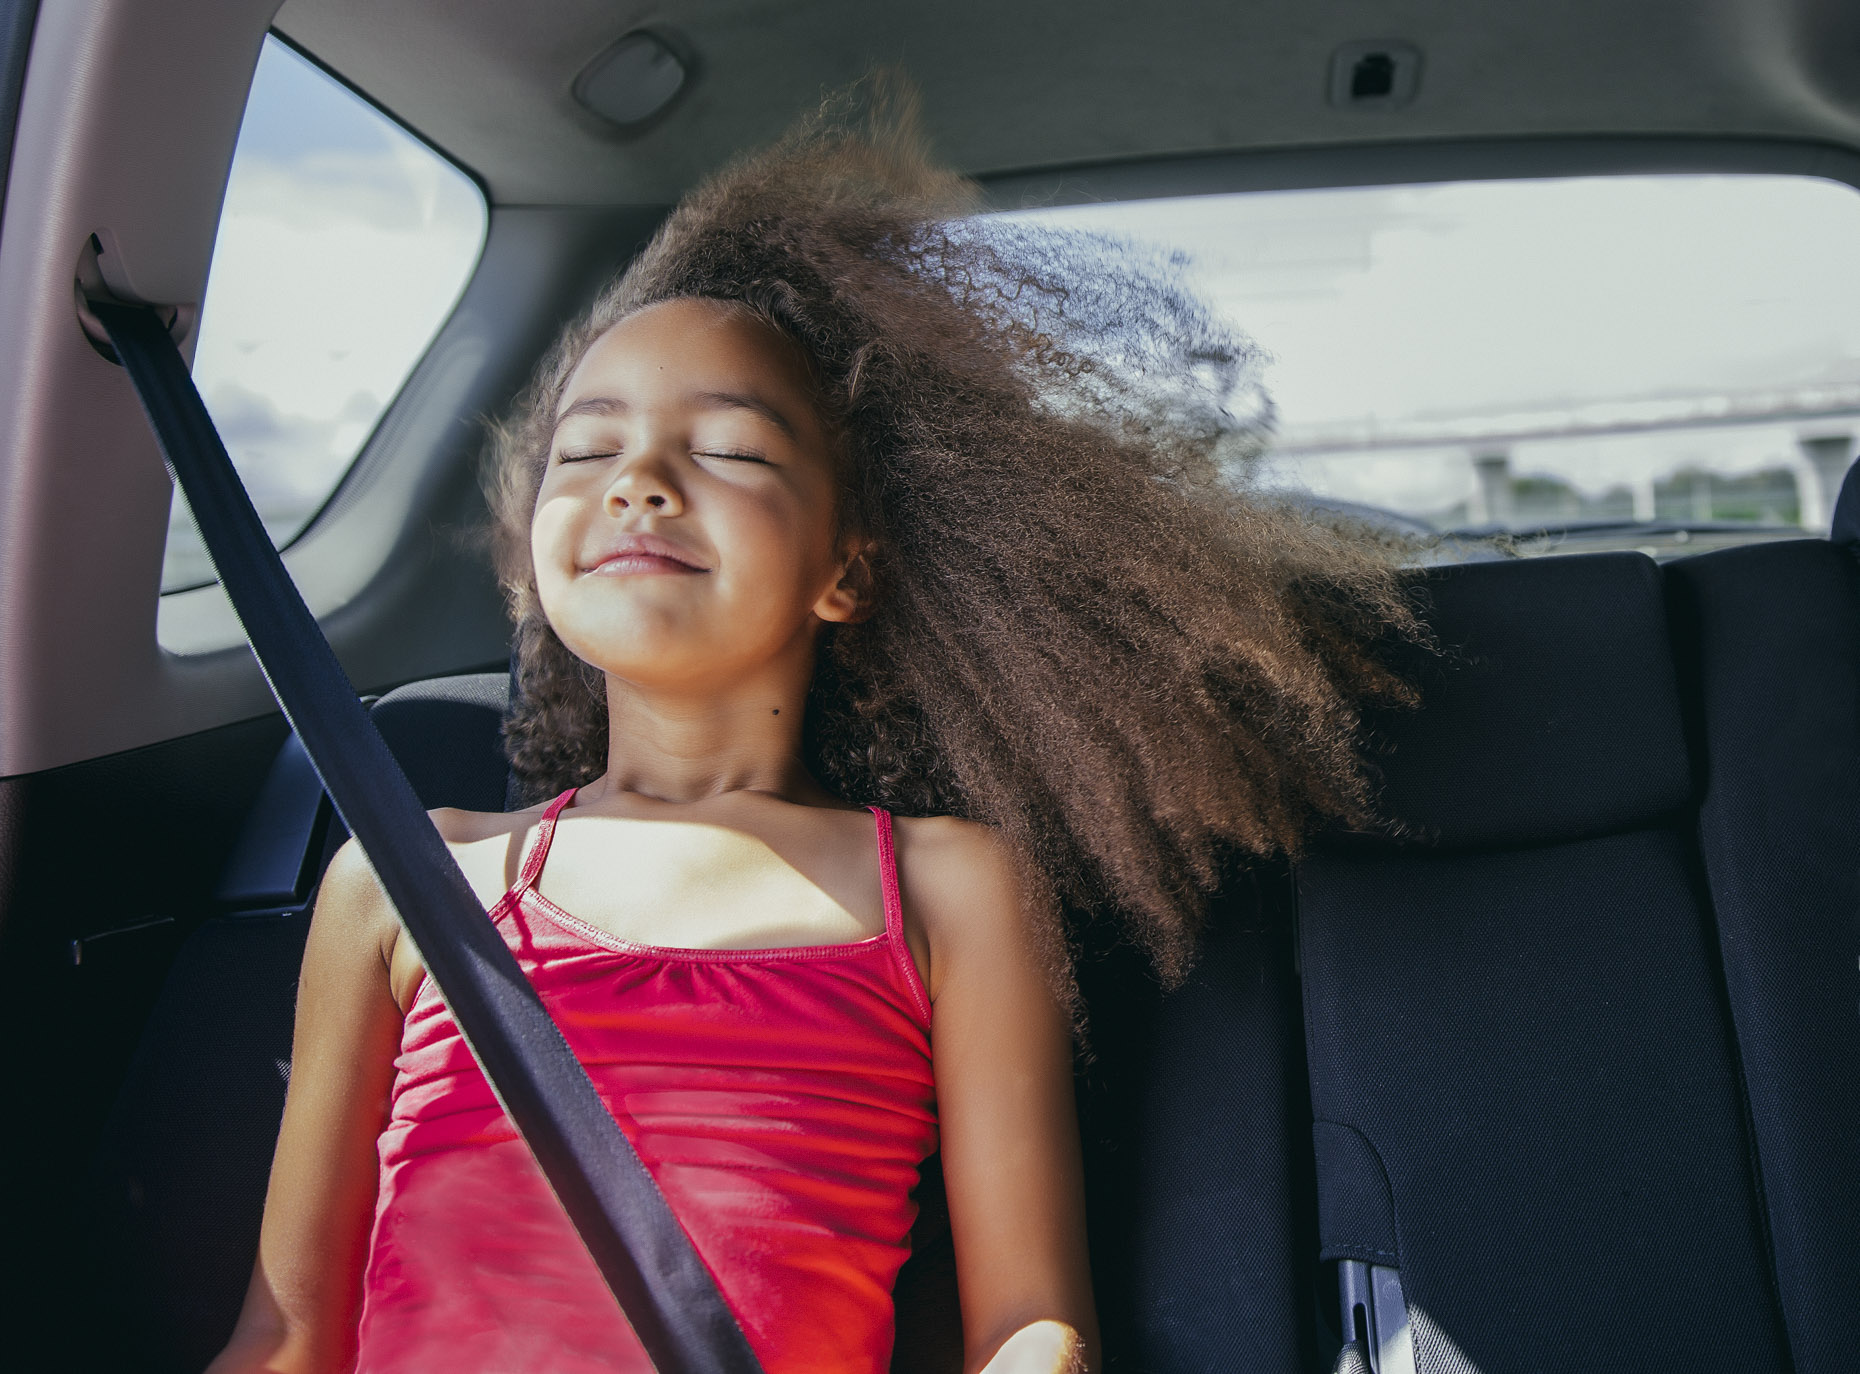 Girl in car with eyes closed and hair blowing in the wind